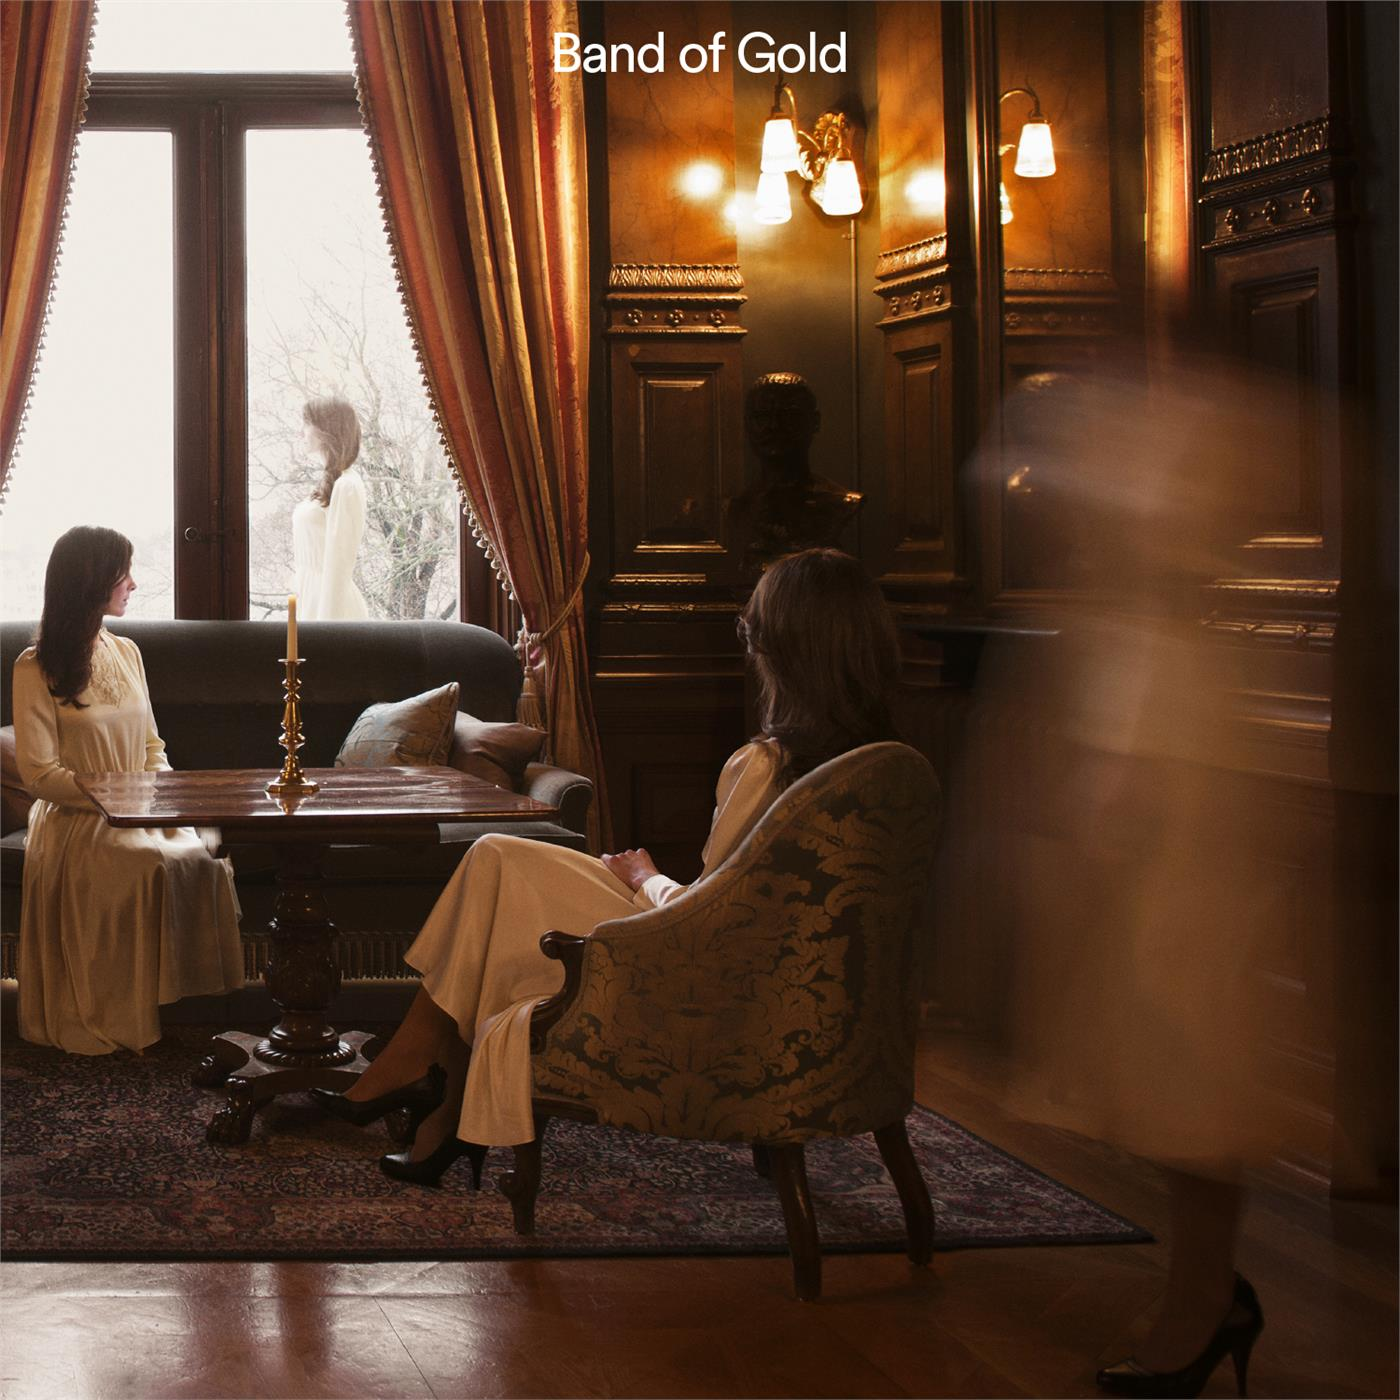 Band of Gold - Band of Gold [LP]